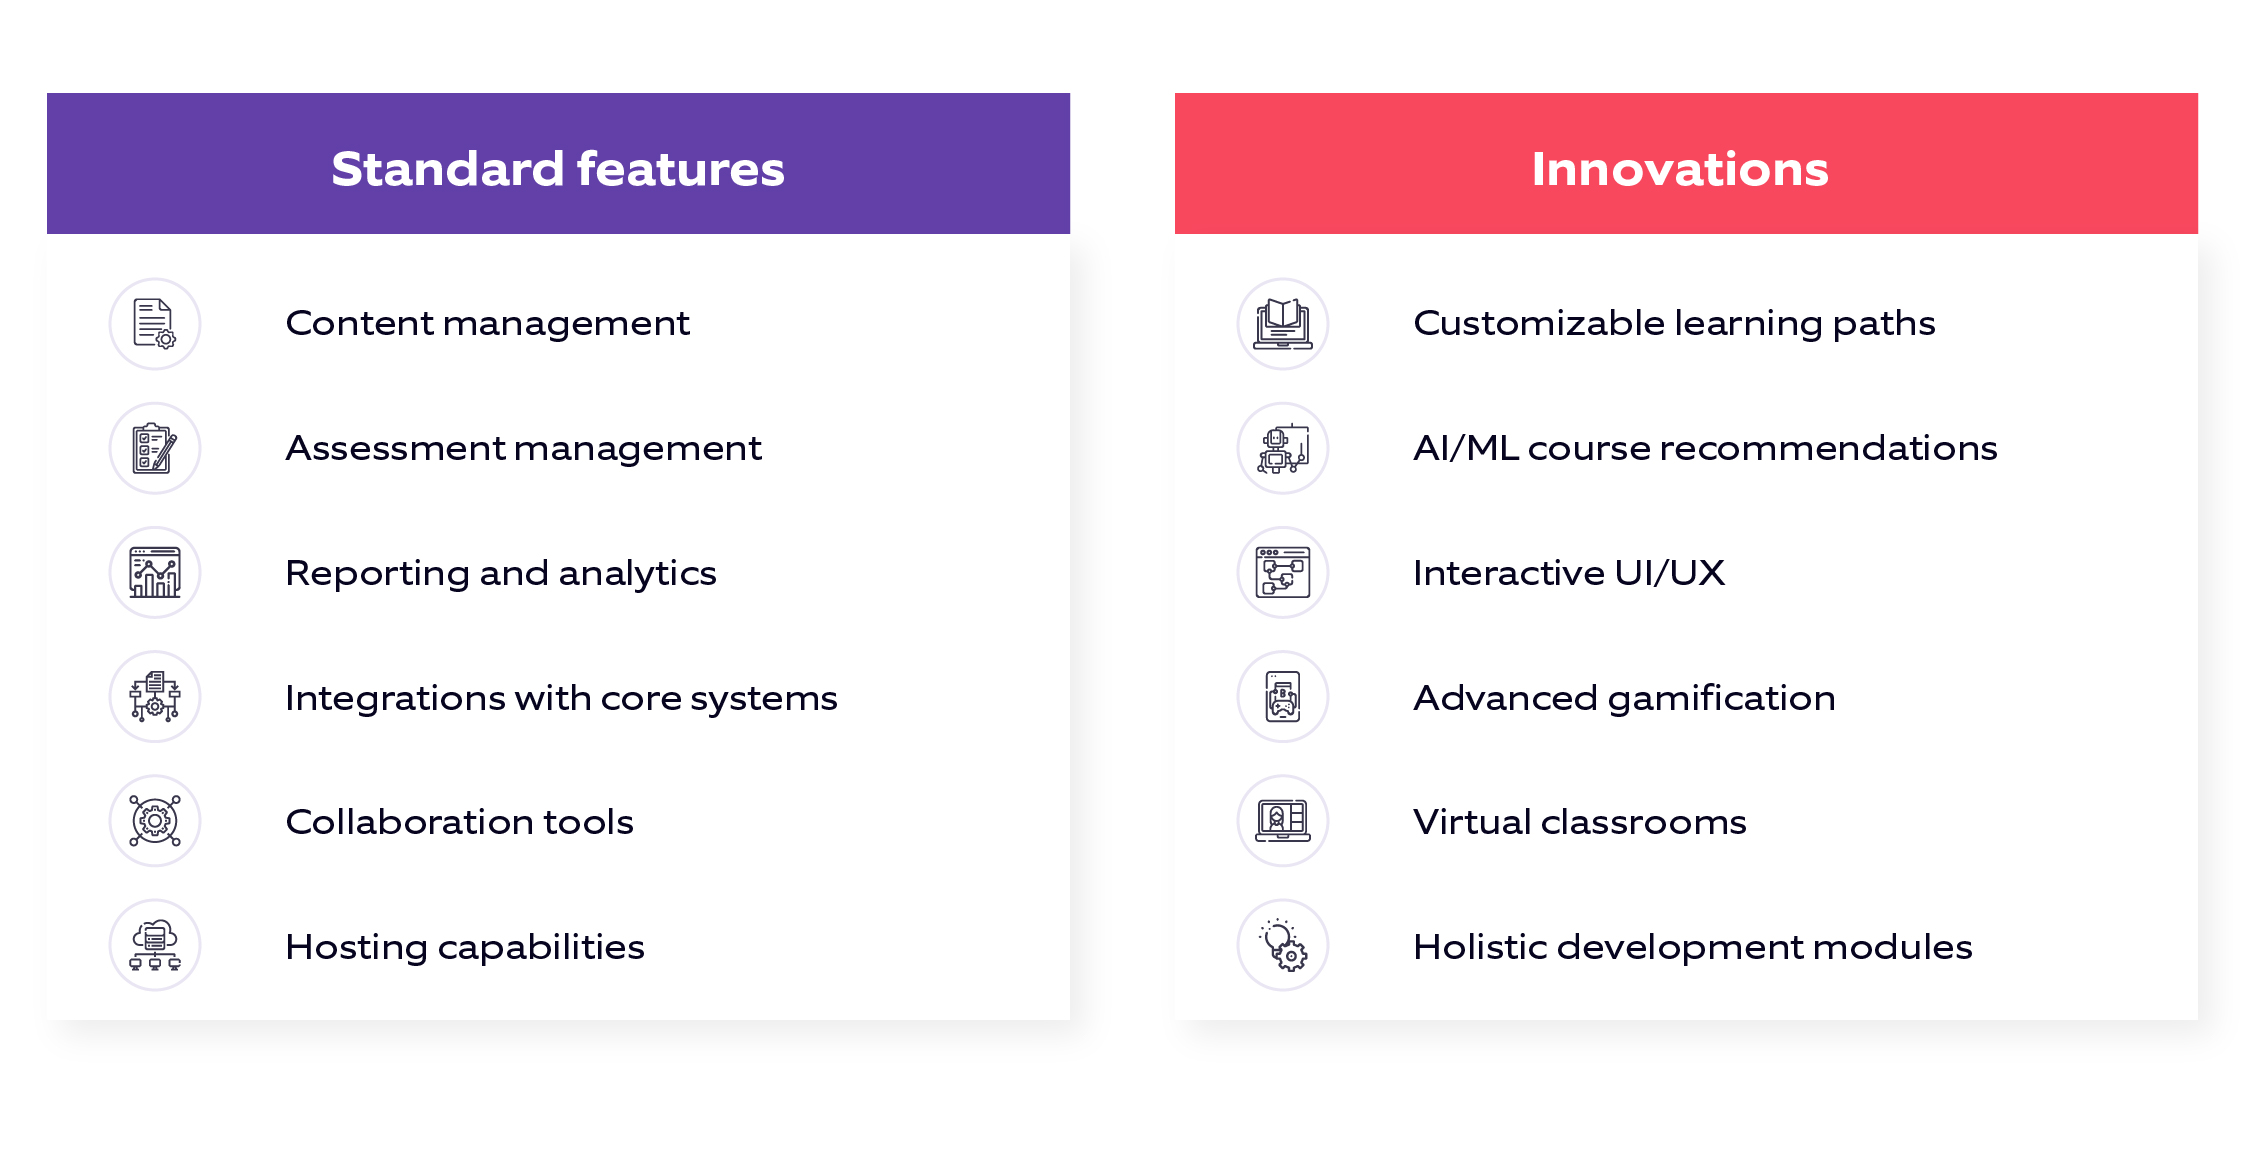 Diagram showing standard features and innovative solutions within LMS solutions